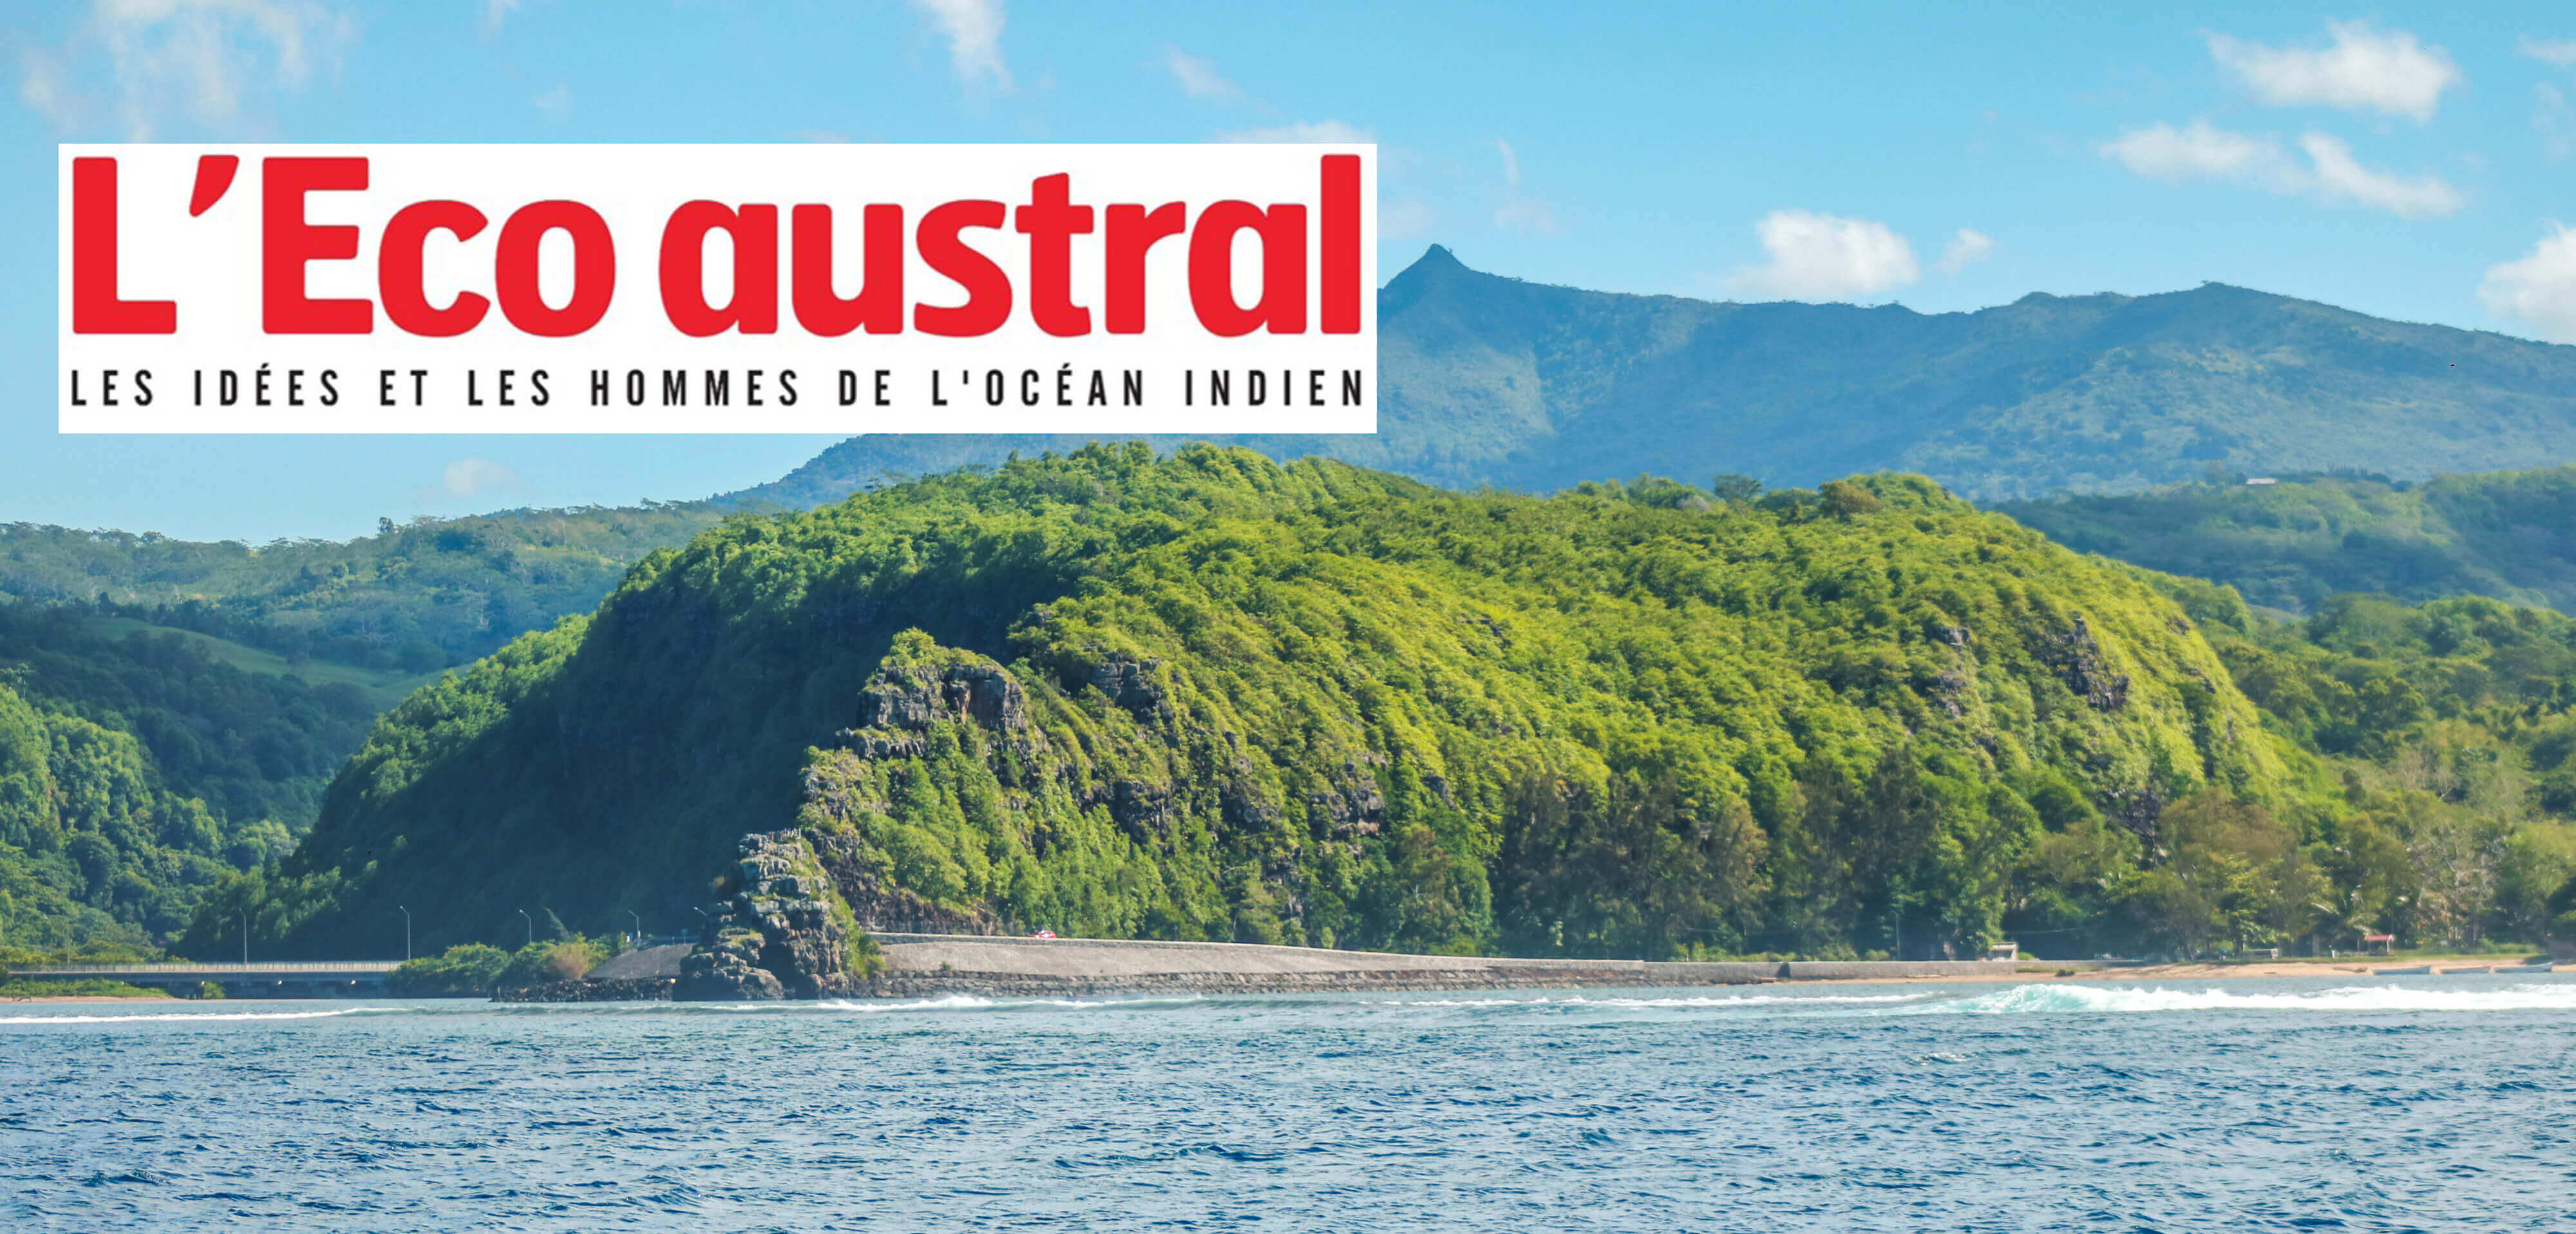 L'ECO AUSTRAL for ANBALABA